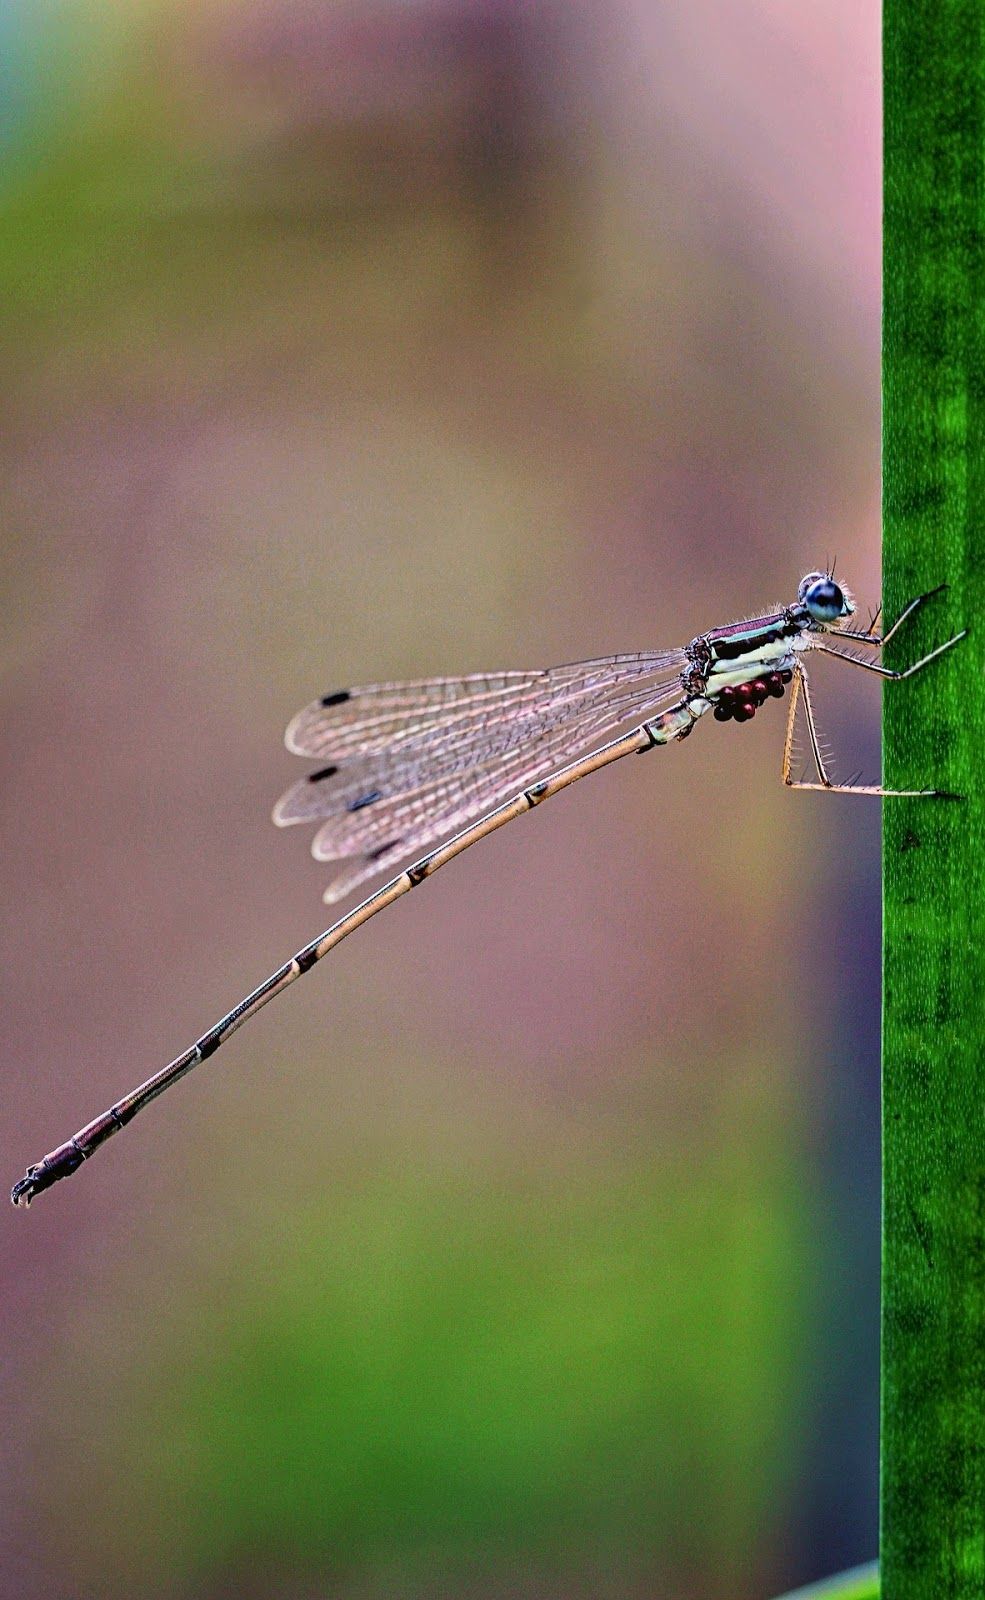 Picture of damselfly amazing acrobatic climb.